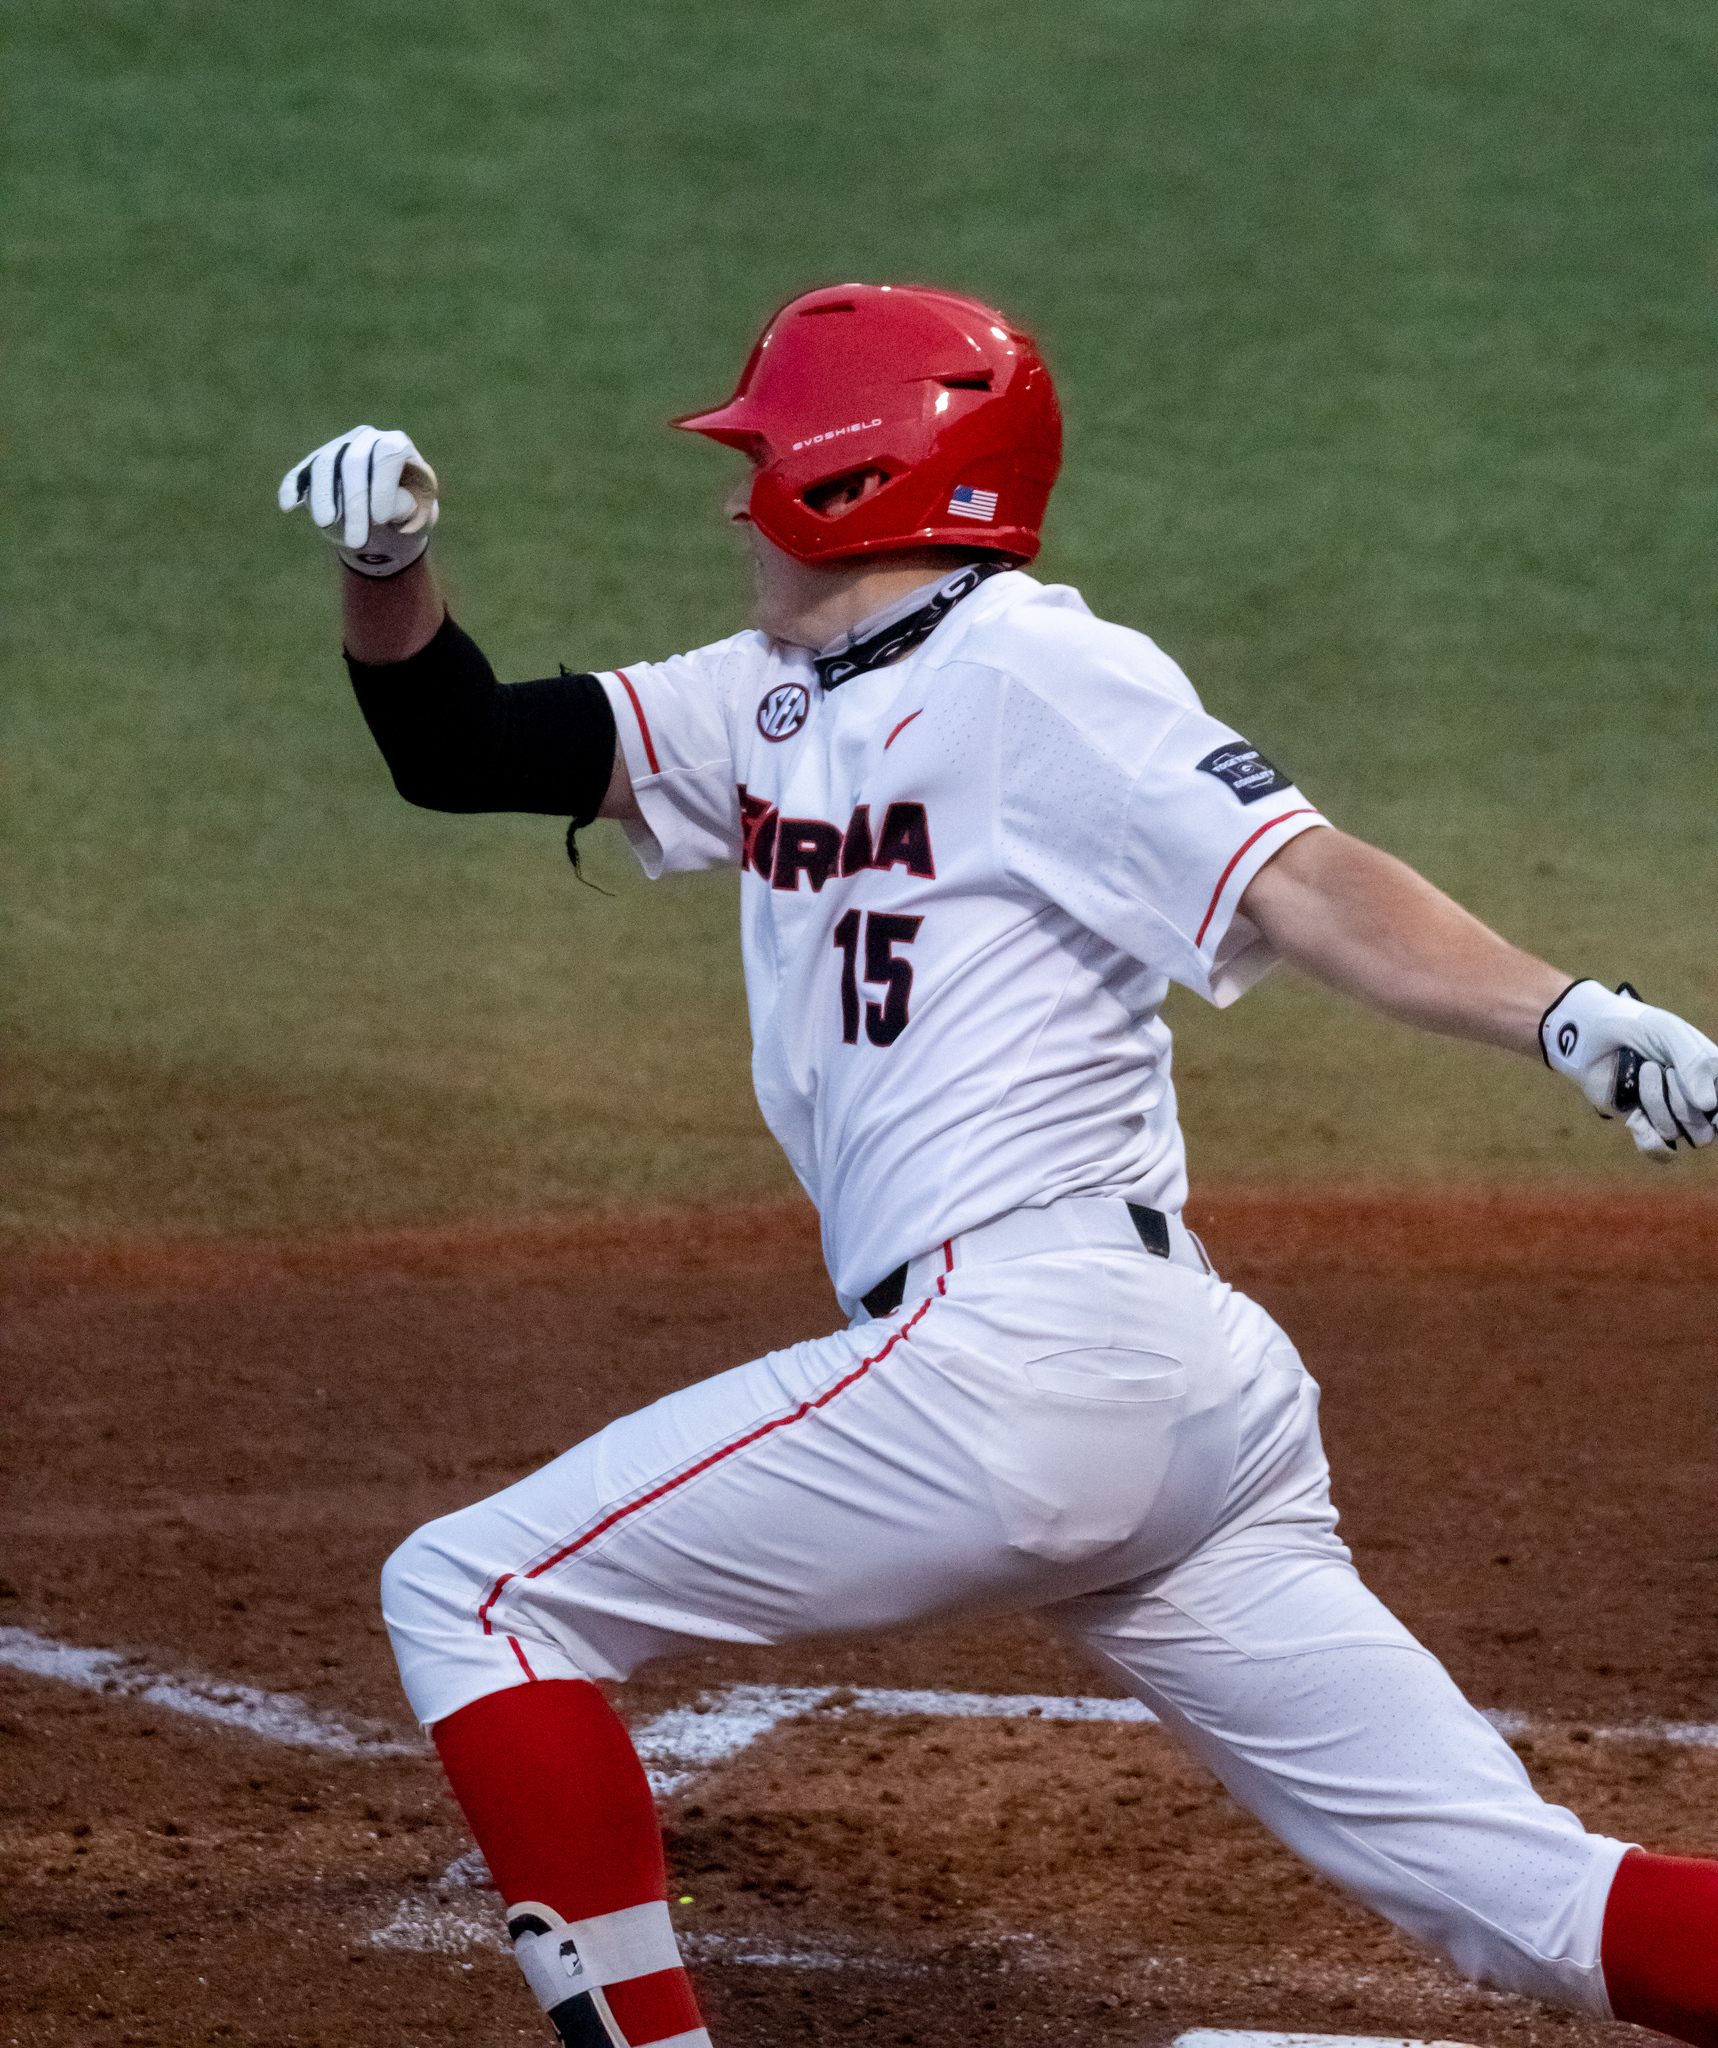 Georgia infielder Cole Tate (15) at a game against Kentucky on April 17, 2021 at Foley Field in Athens, GA (photo by Jack Casey)